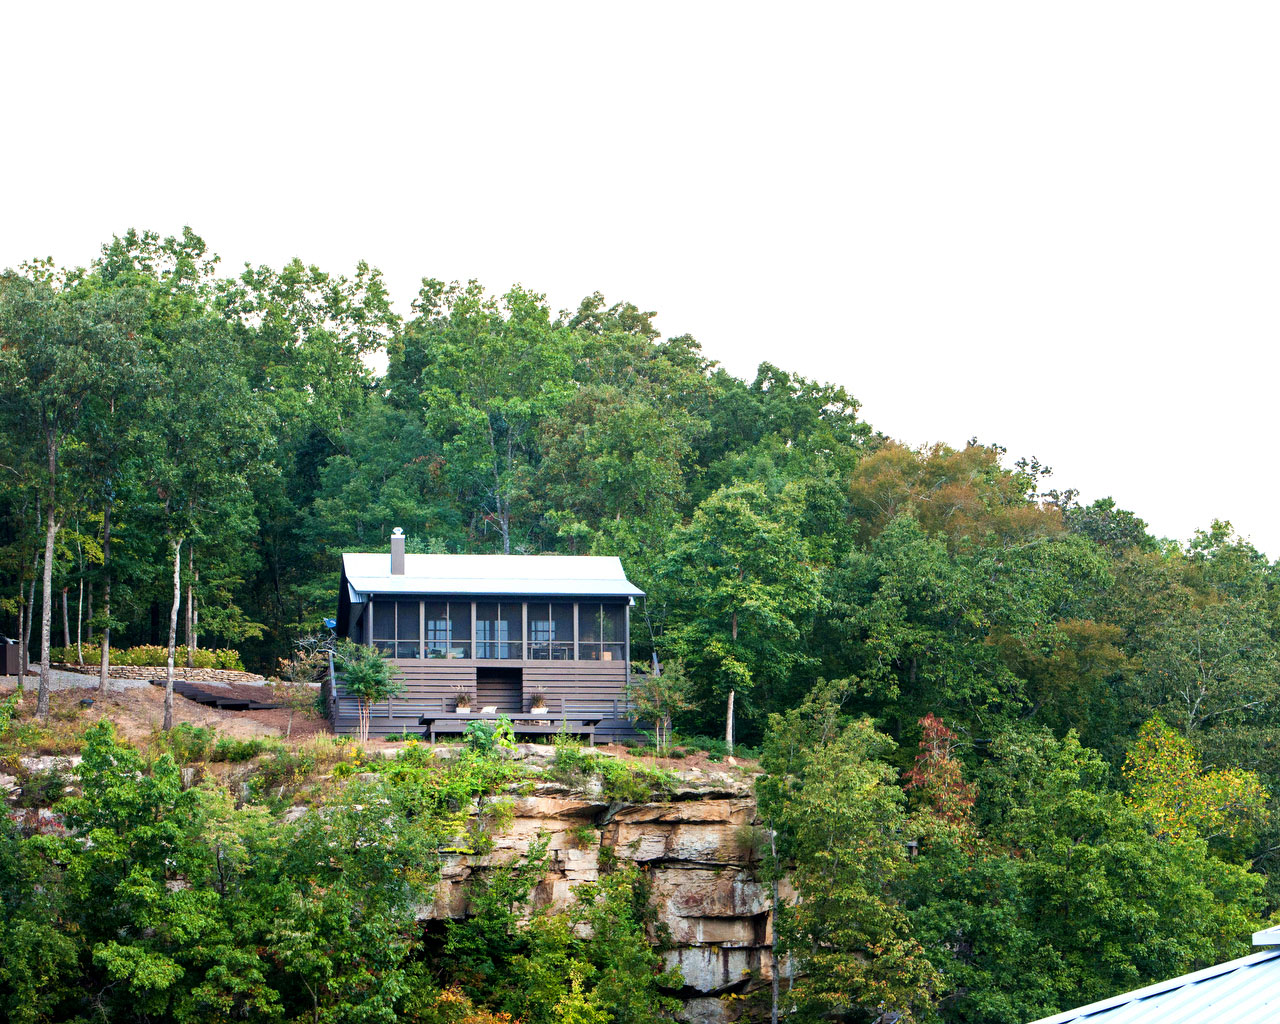 Brown Lakeside Cabin on Cliff